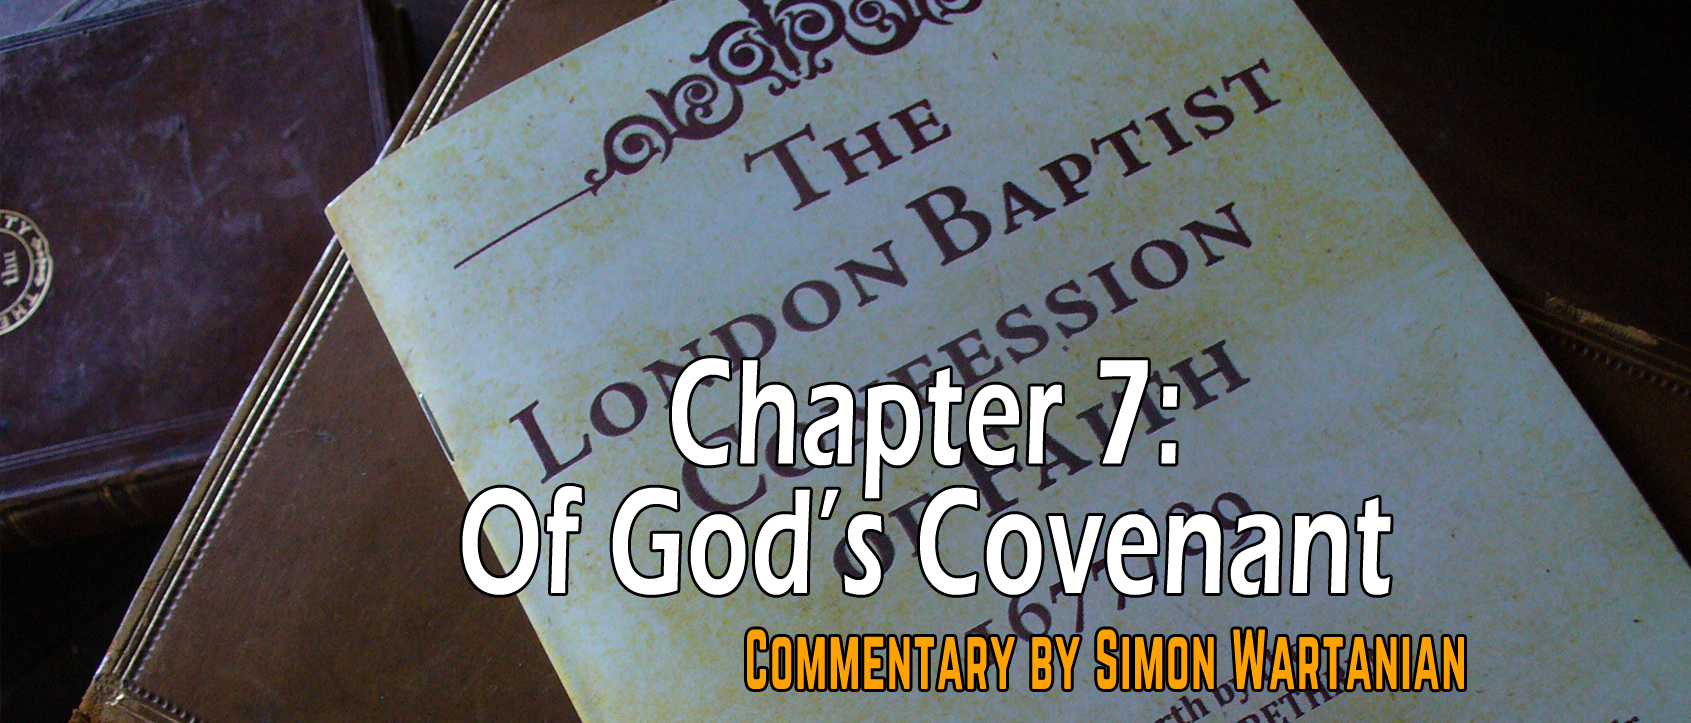 1689 Baptist Confession Chapter 7: Of God's Covenant - Commentary